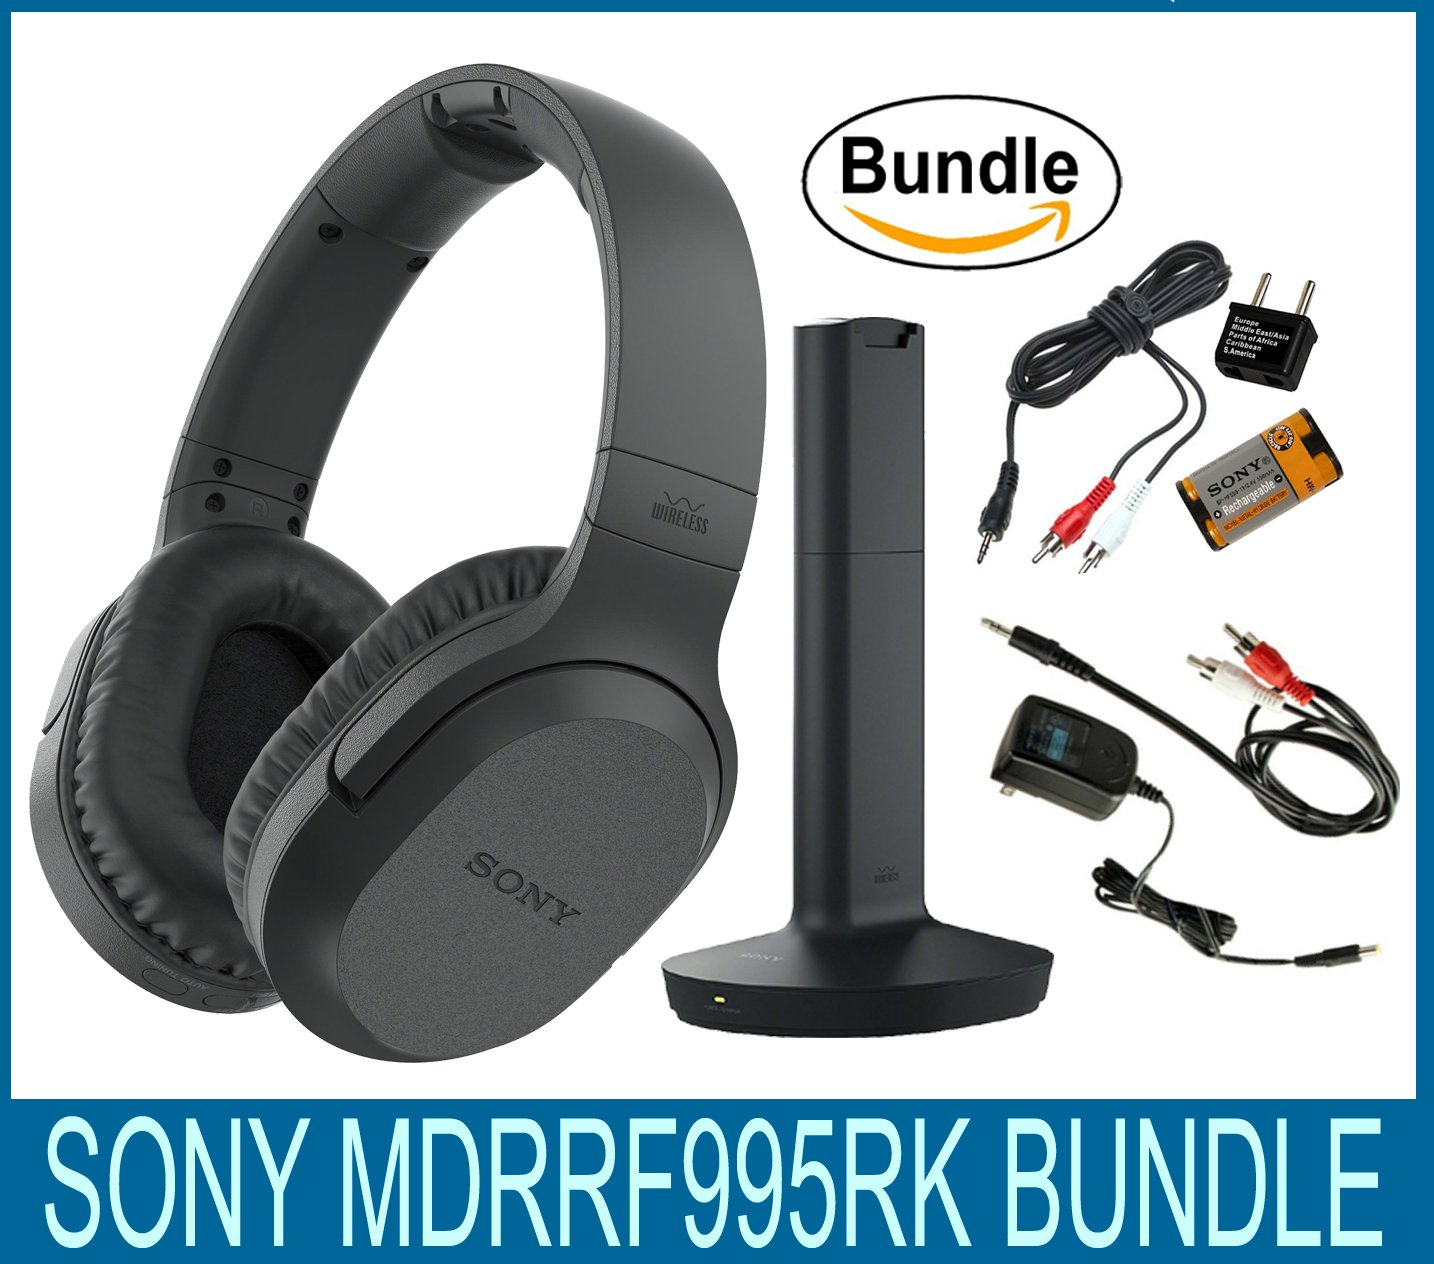 Sony RF995RK Wireless RF Headphones, Zonoz 6FT Stereo Audio Y Cable Splitter & Worldwide Voltage 110V/220V AC Adapter, Zonoz International Two-Prong Round Pin Plug Adapter (Bundle) by Sony